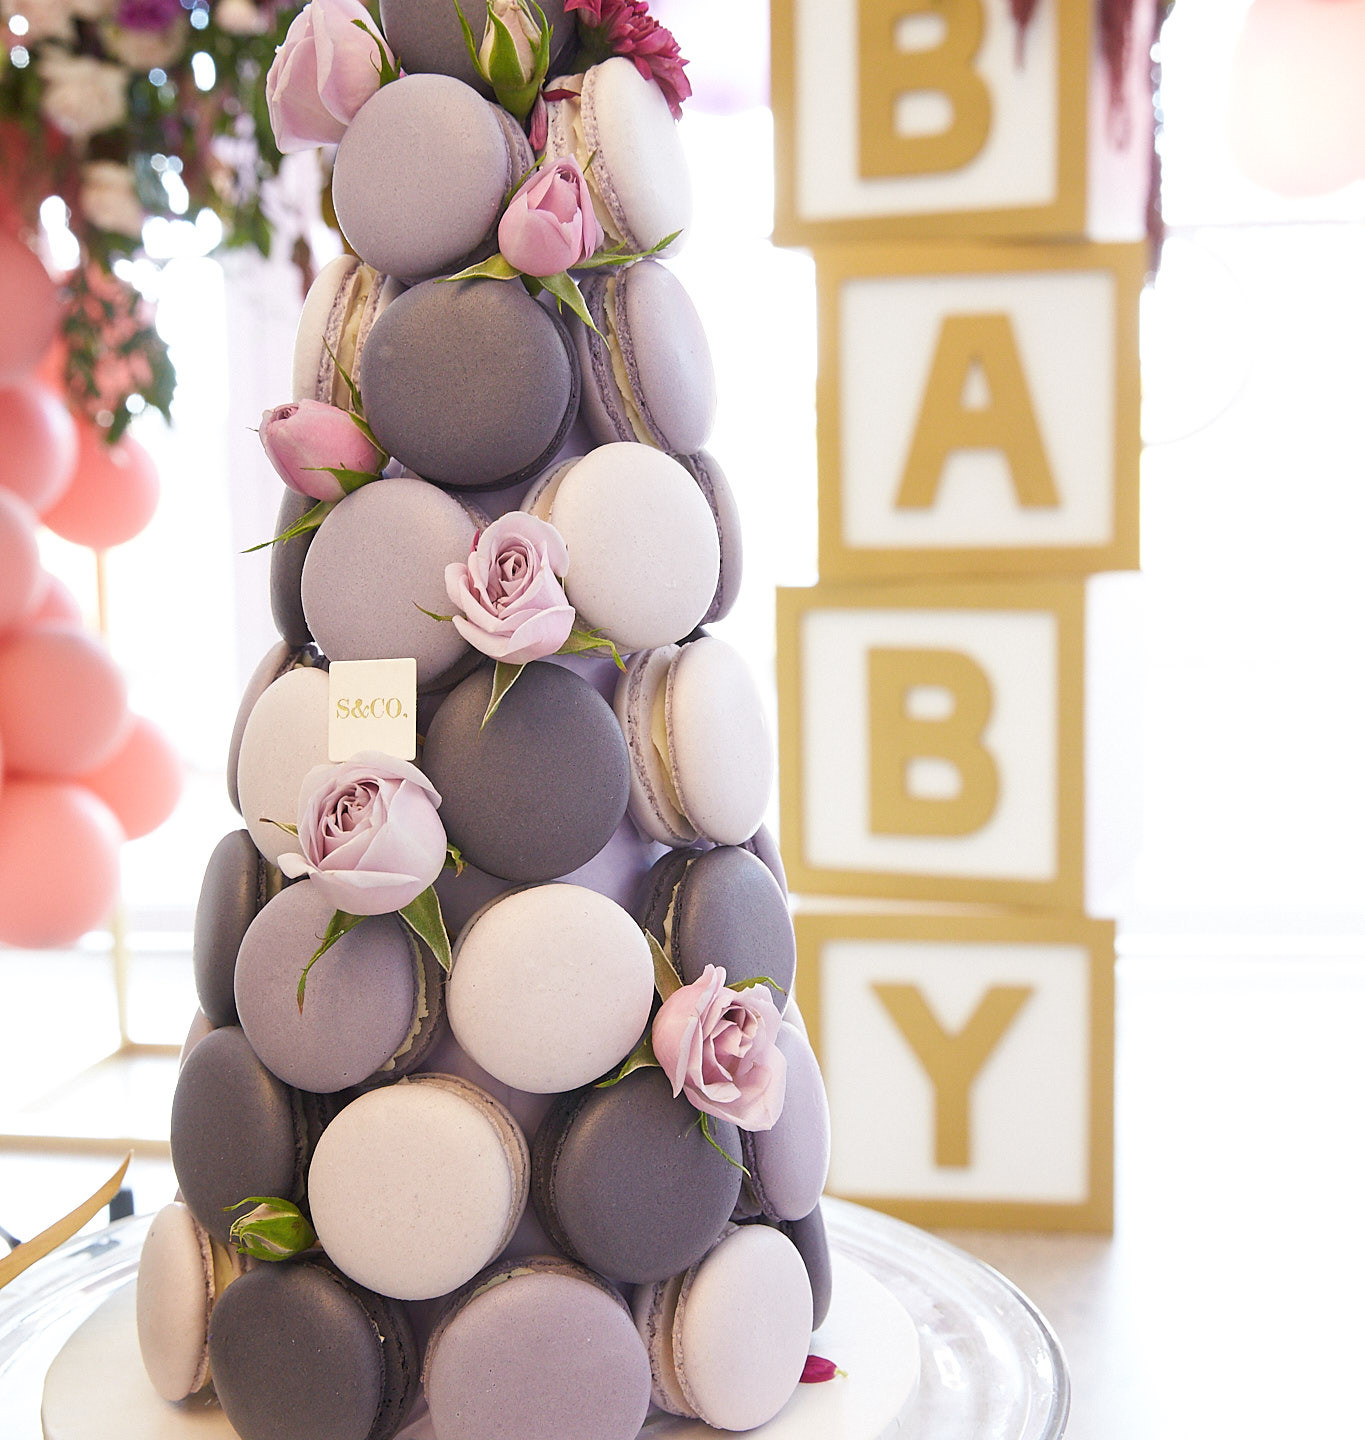 Kate-baby-shower-harrison-photography-003